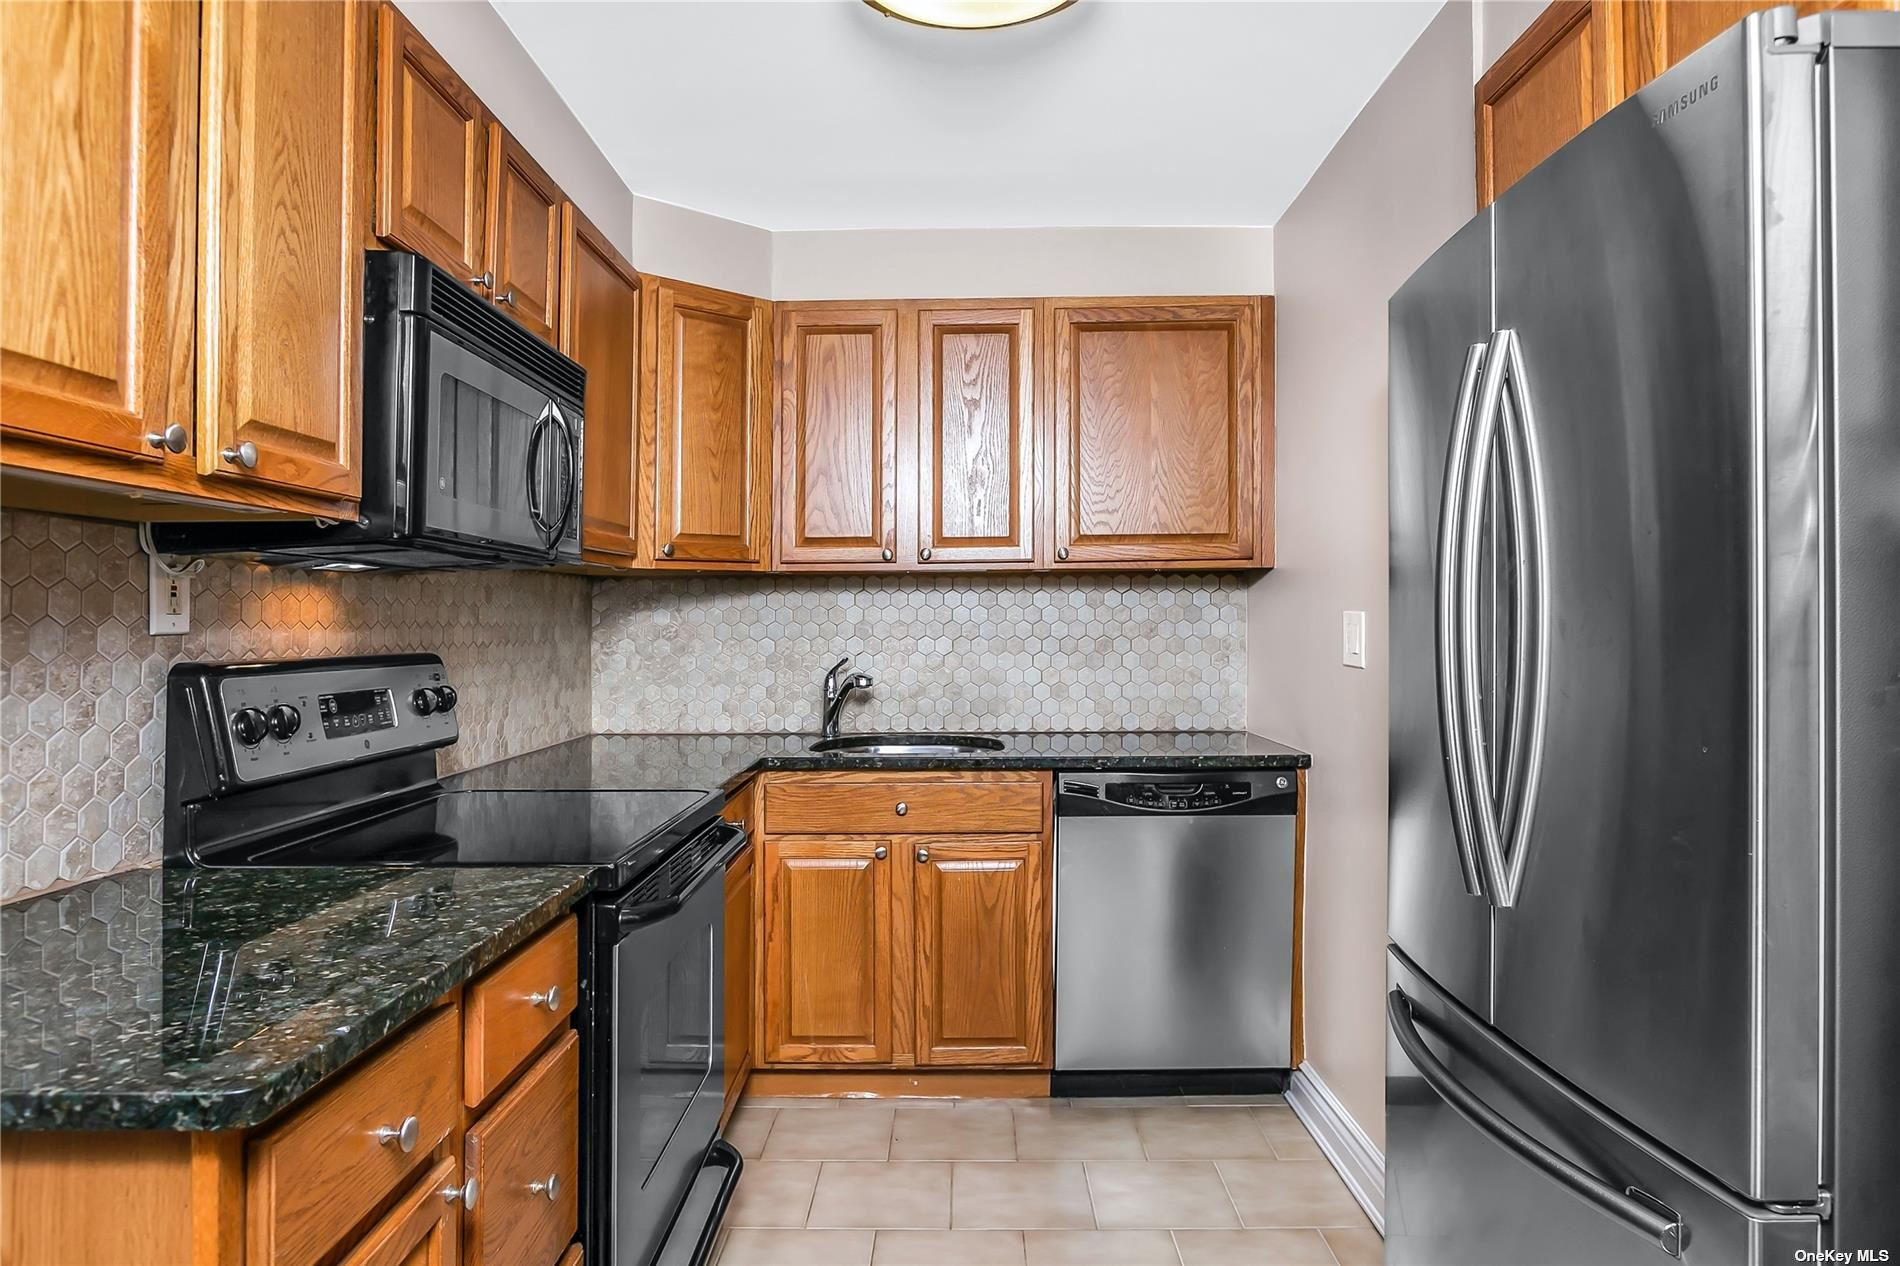 Move right into this Sundrenched unit with Open views for privacy -Stunning wood floors throughout- Maple wood cabinets in kitchen with granite countertops and stainless appliances.  Euro Bath with ceramic tiles...Flat ceilings -steps from prime parking space paid by buyer (8,500)  Pools, health club and tennis on grounds...